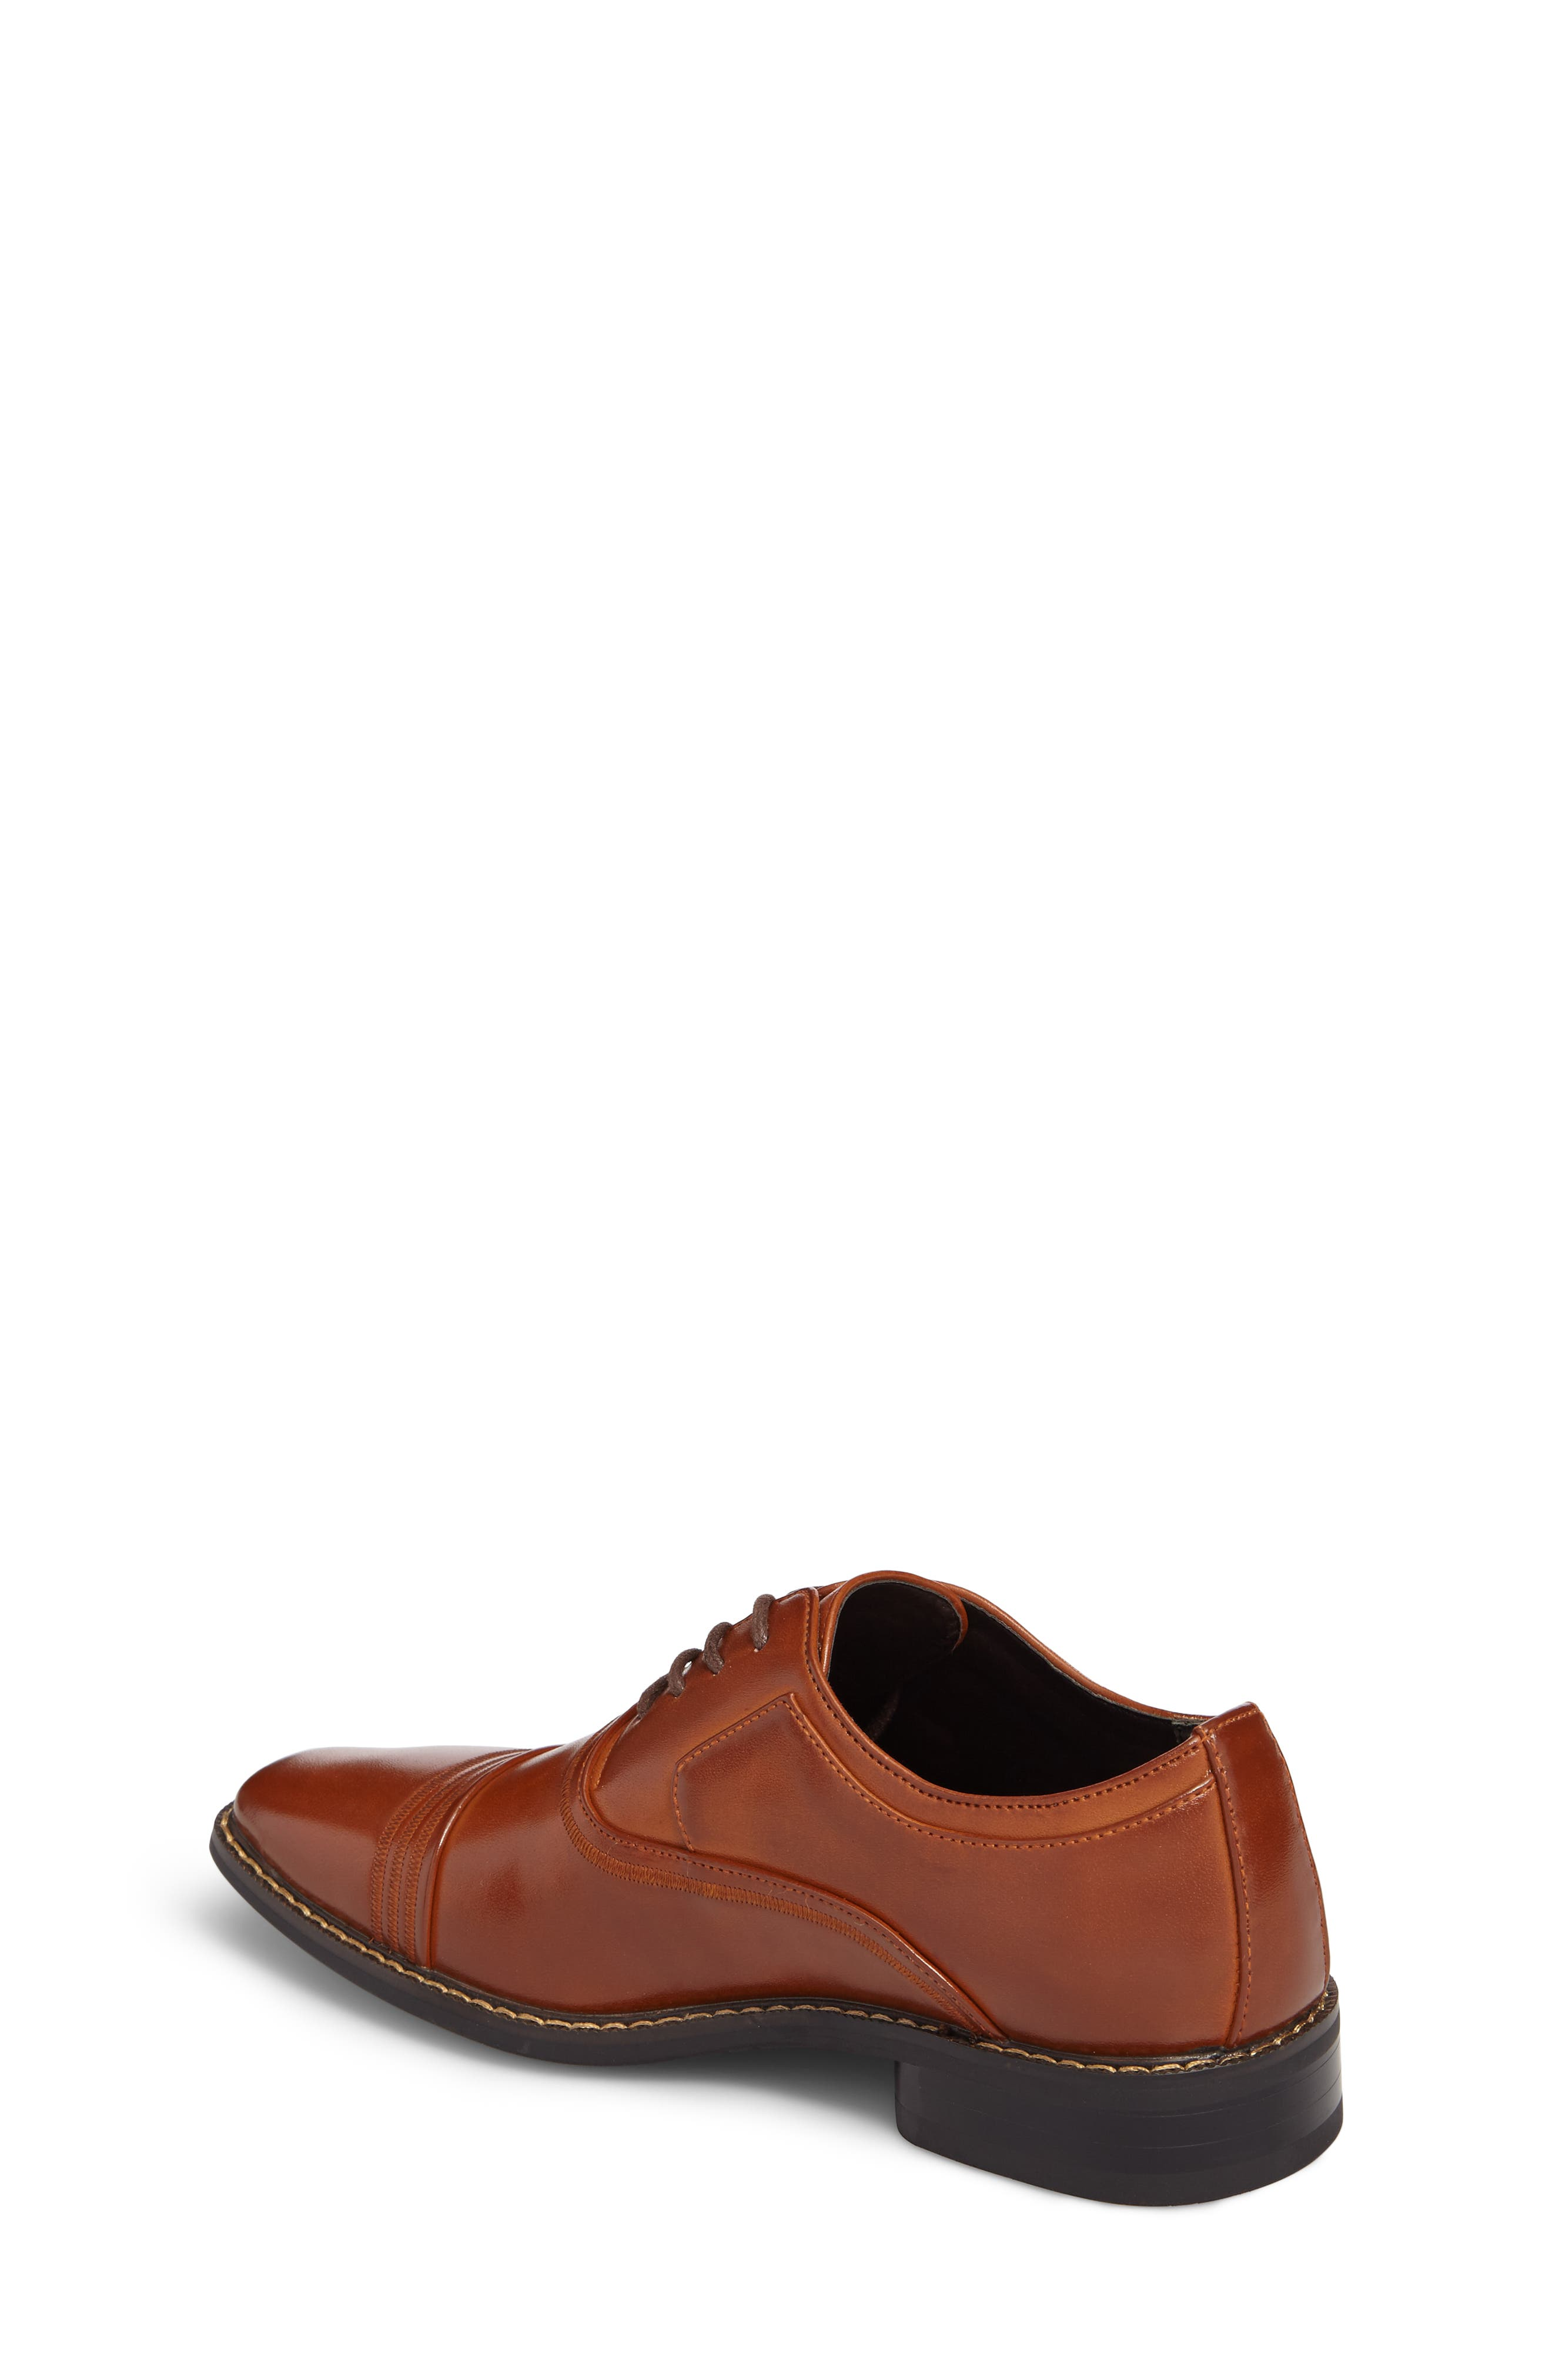 Alternate Image 2  - Stacy Adams Bingham Cap Toe Oxford (Toddler, Little Kid & Big Kid)